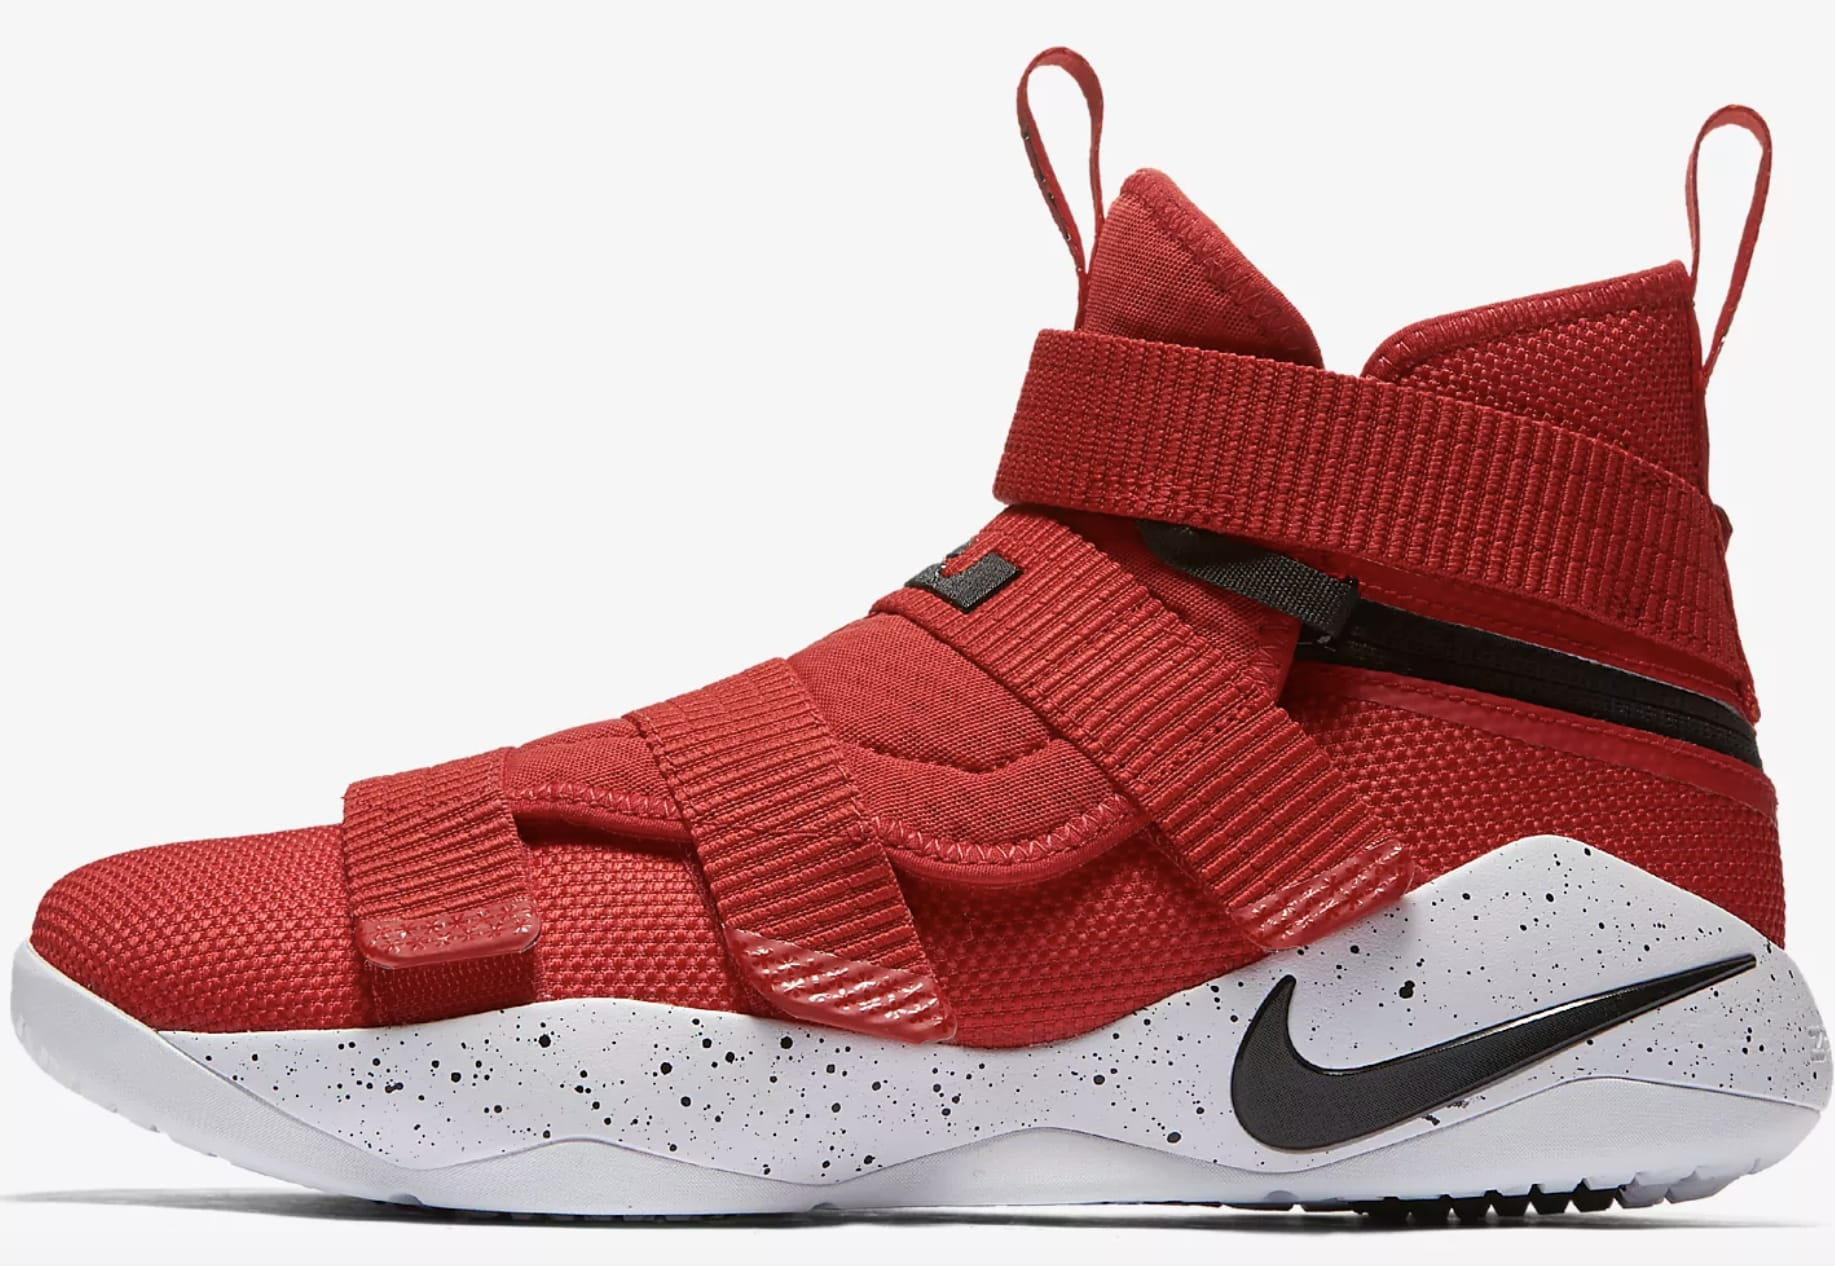 nike lebron soldier 11 flyease red